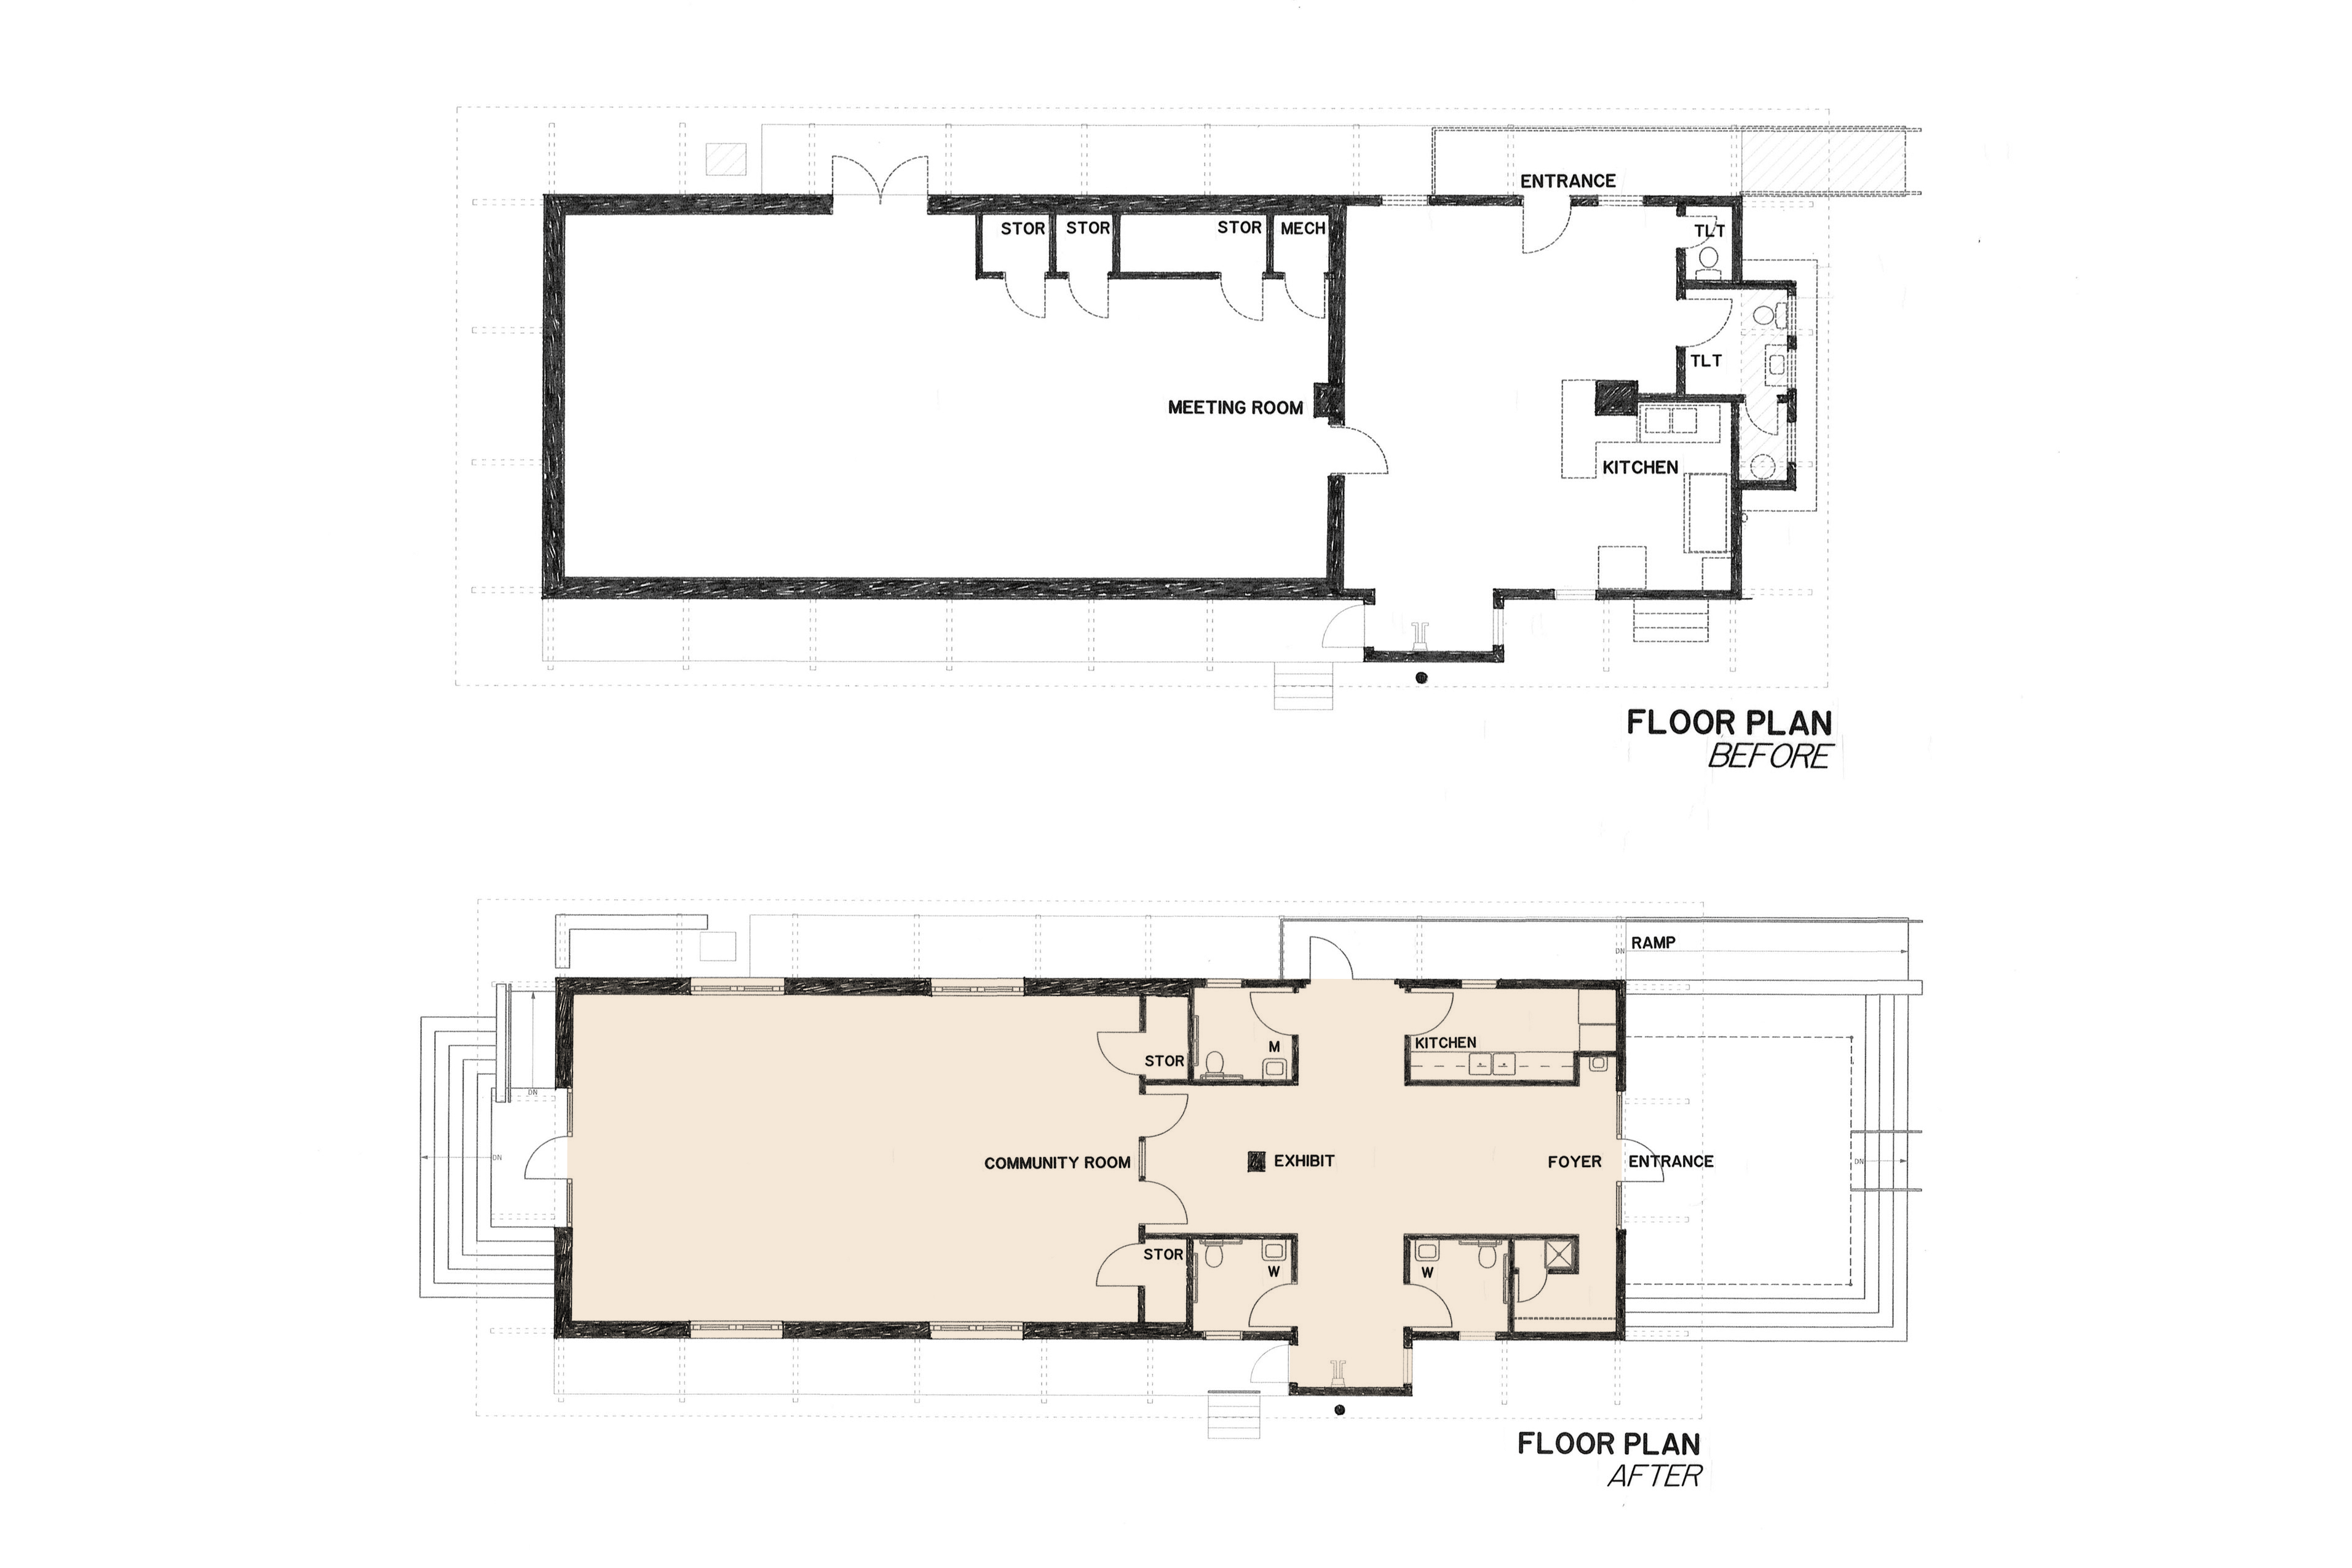 Before and after floor plans.